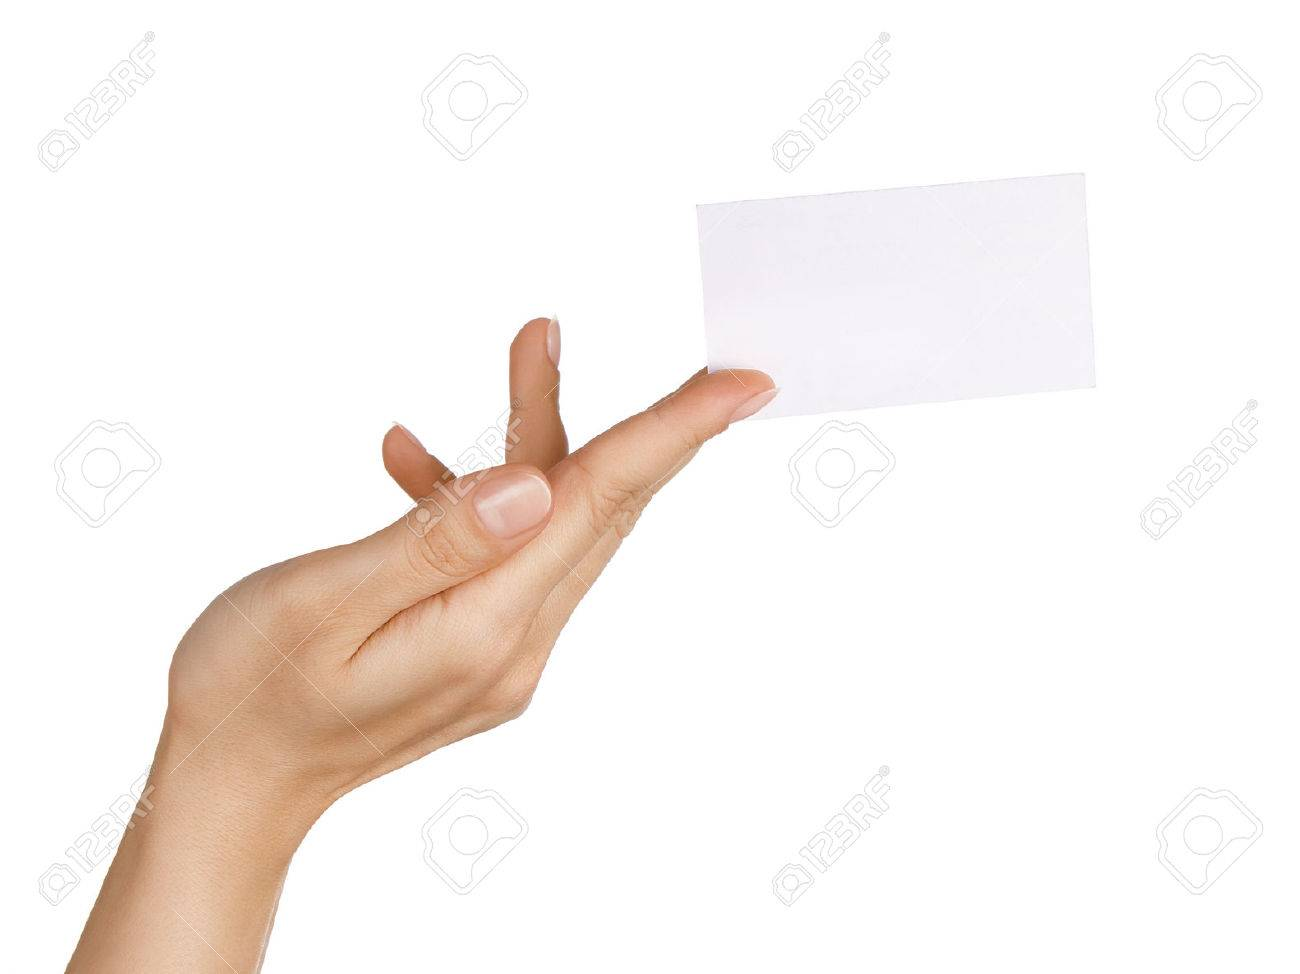 Close up of female hand holding/ giving blank business card isolared on white background Standard-Bild - 46509363